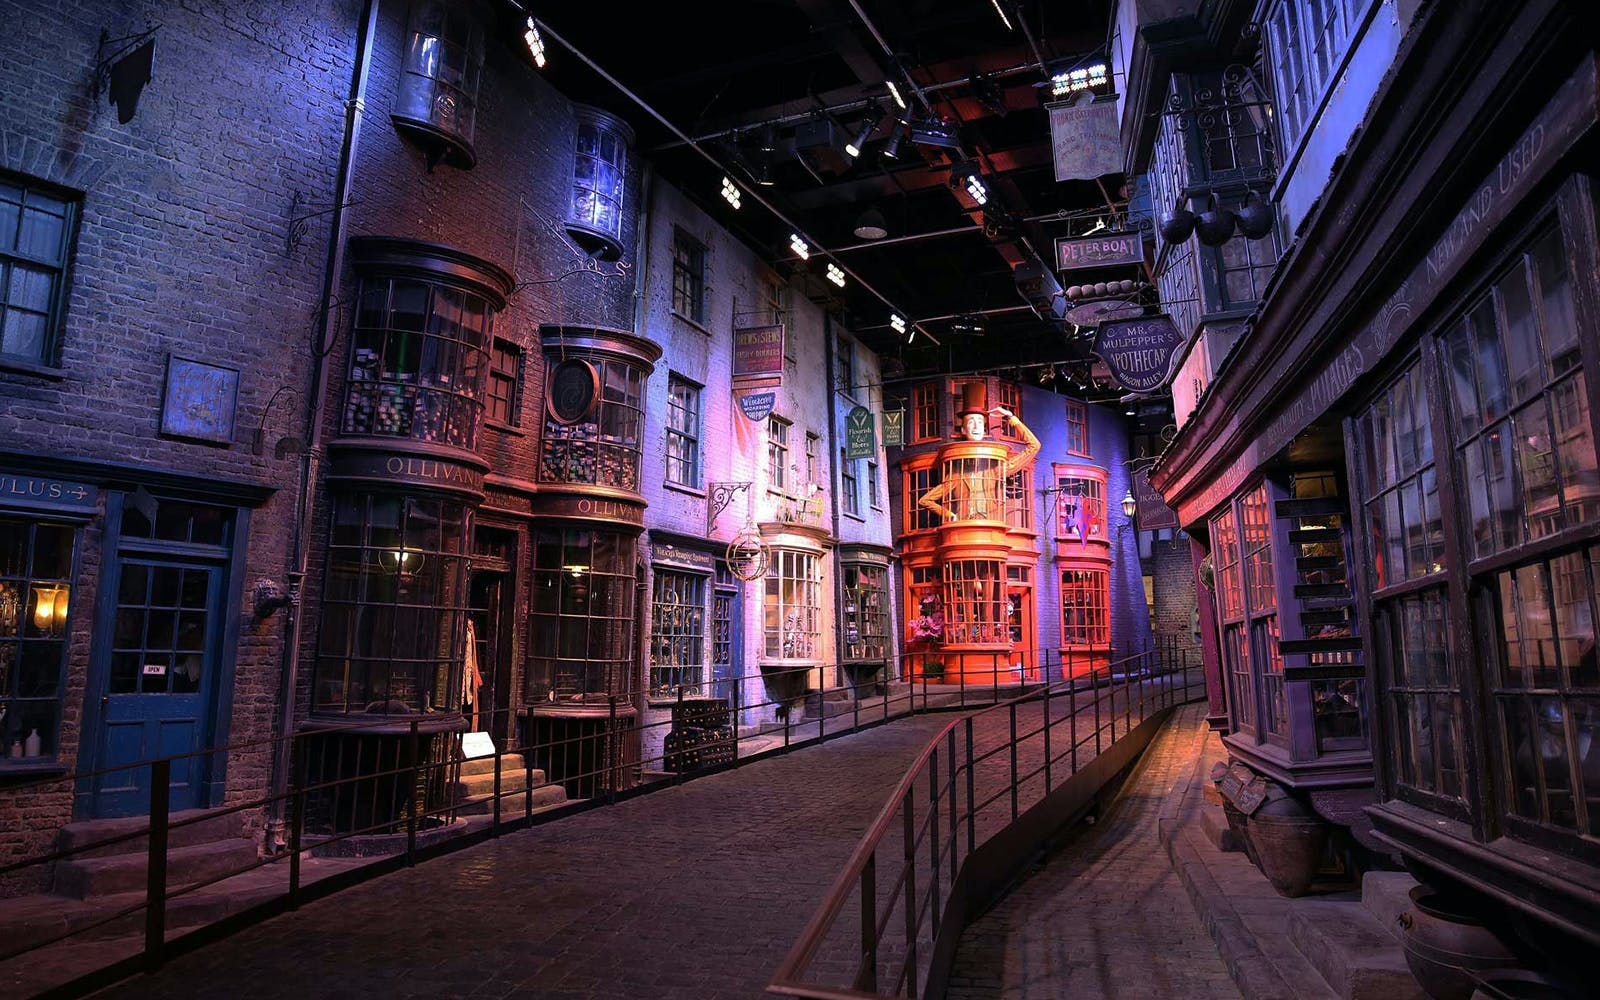 warner bros. studio tour with return transfers-3